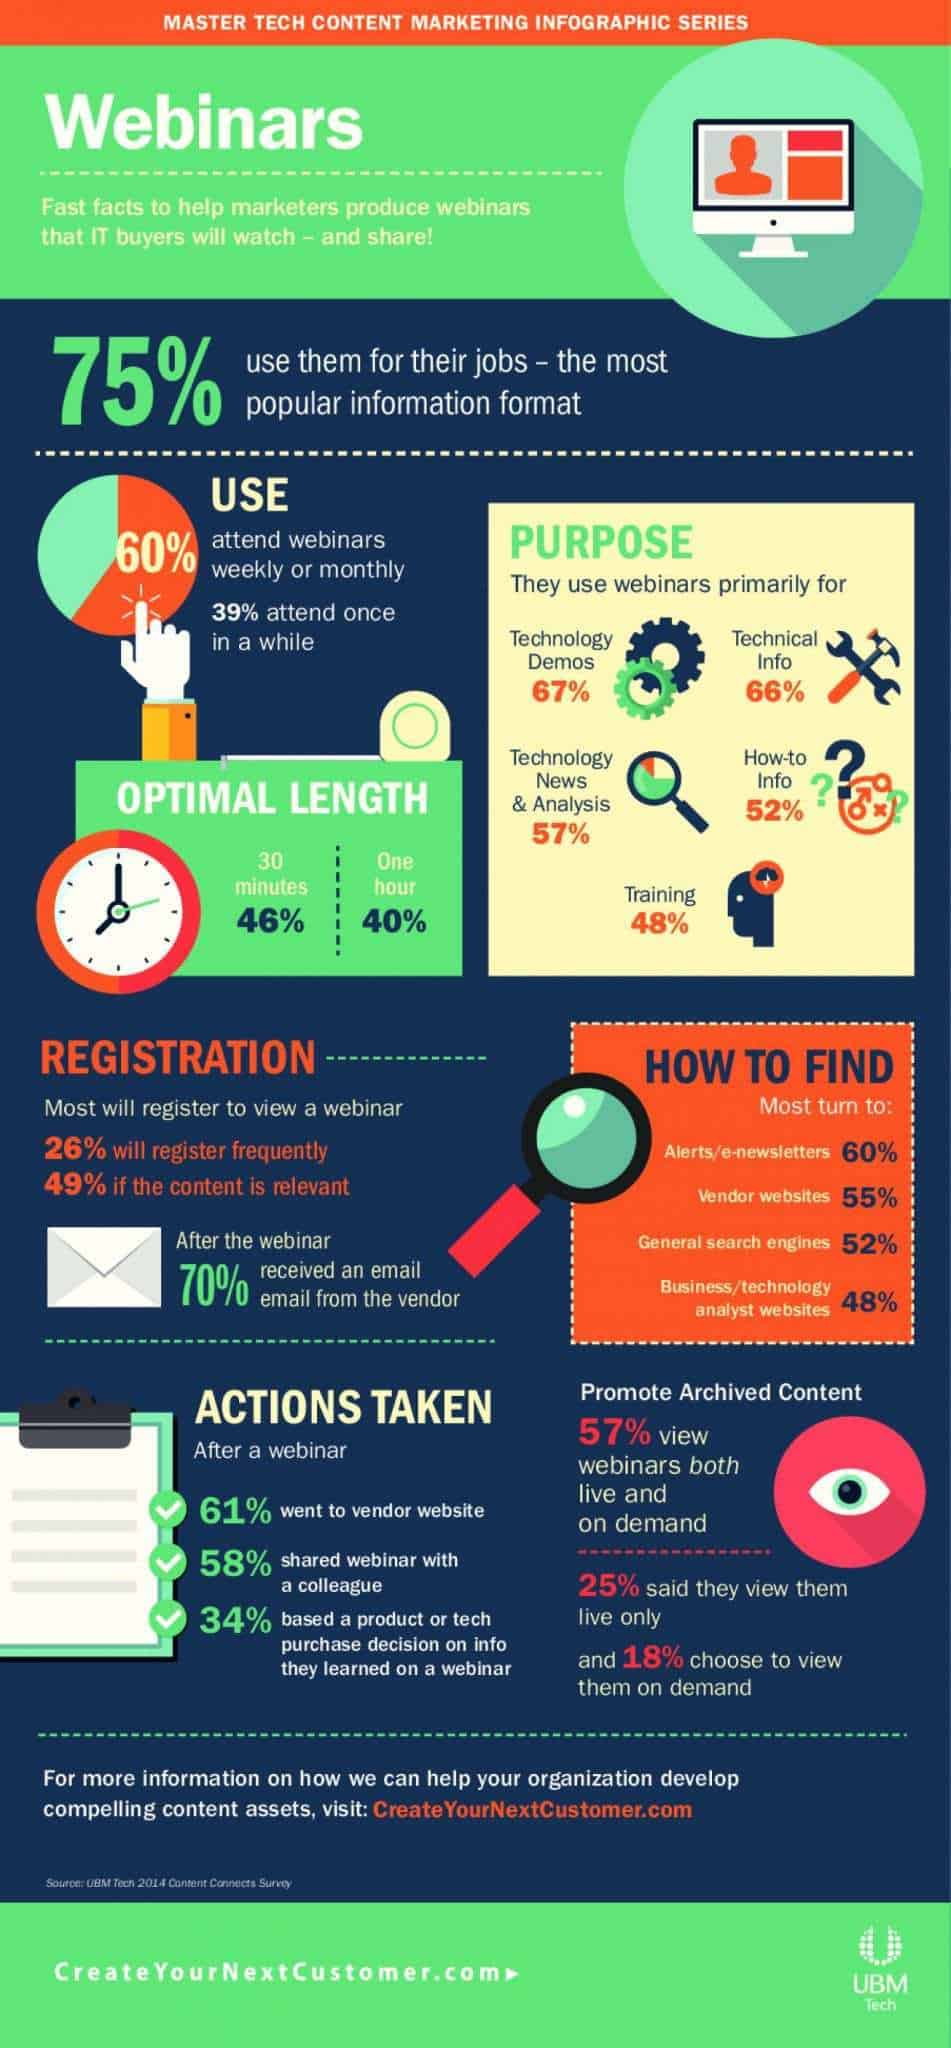 For more tips and everything you need to know about webinars, check out this great infographic.